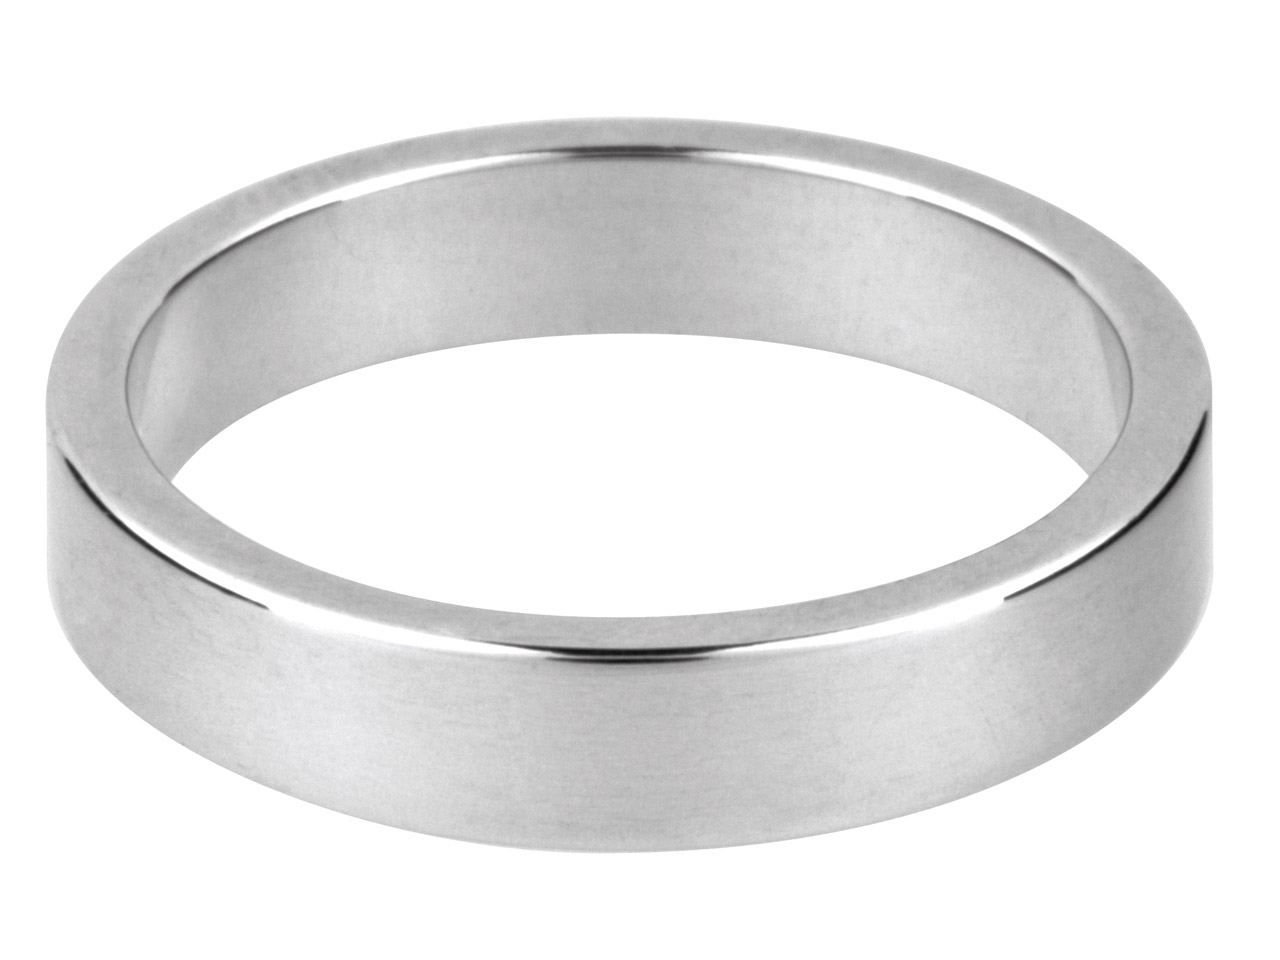 Platinum Flat Wedding Ring 8.0mm S 13.7gms Medium Weight Hallmarked   Wall Thickness 1.26mm